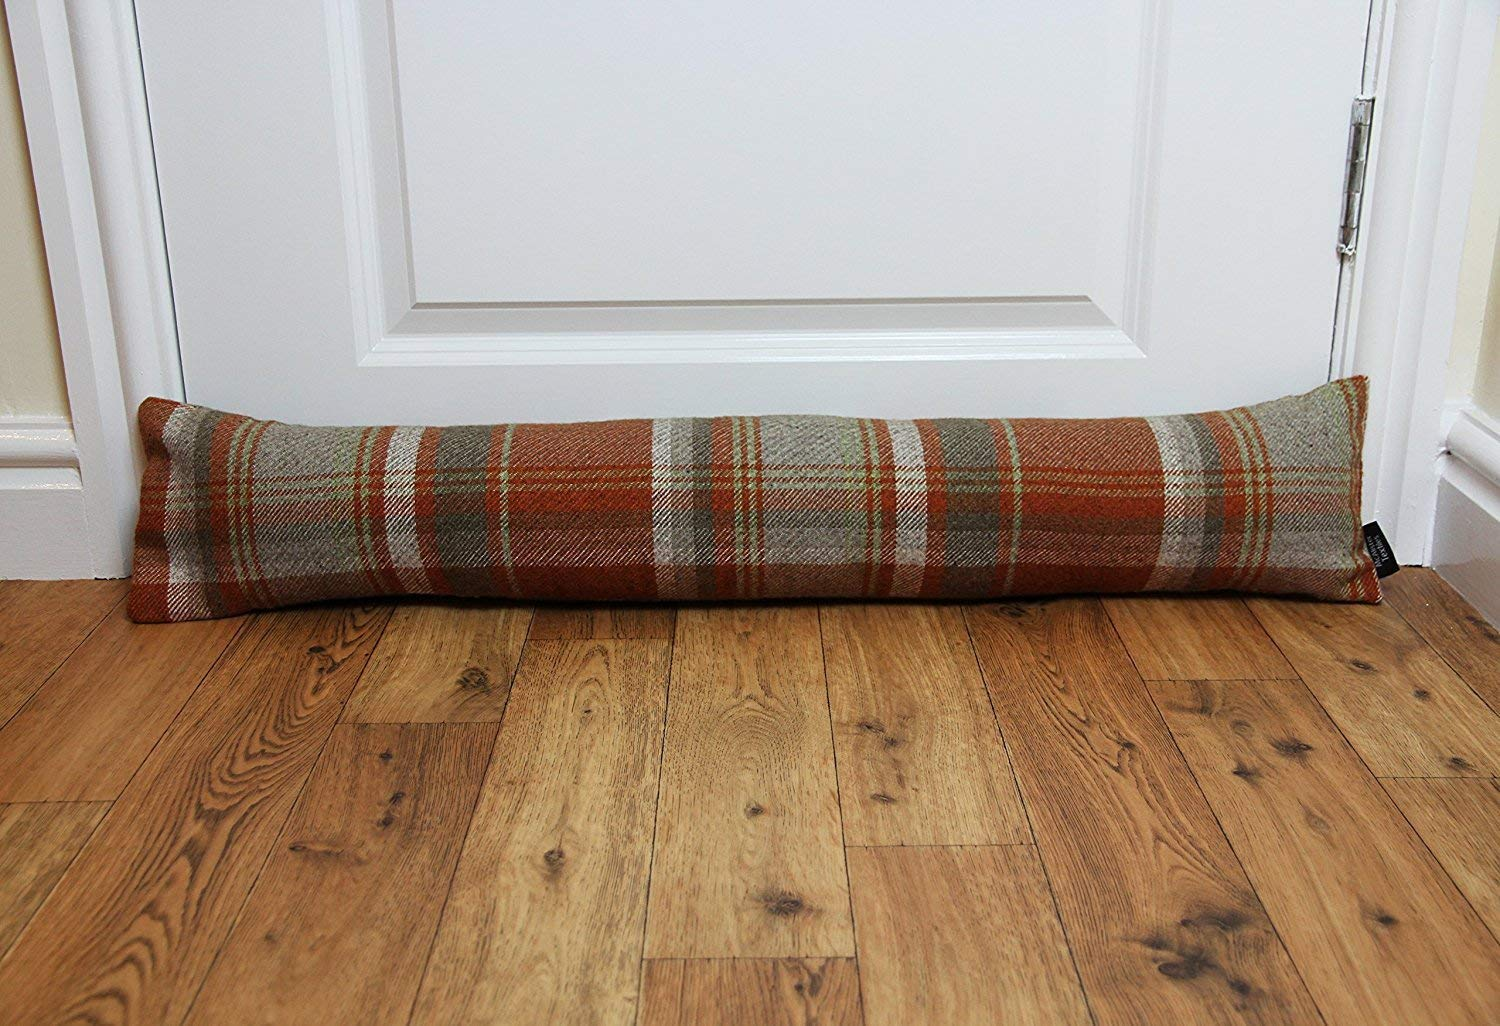 McAlister Textiles Window Draft Stopper and Door Cloth Seal 36'' Stops Unfriendly Drafts and Wind Noises, UNFILLED Heritage Plush Plaid Cloth Door Draft for a Rustic Farmhouse Decor Accent, Terracotta by McAlister Textiles